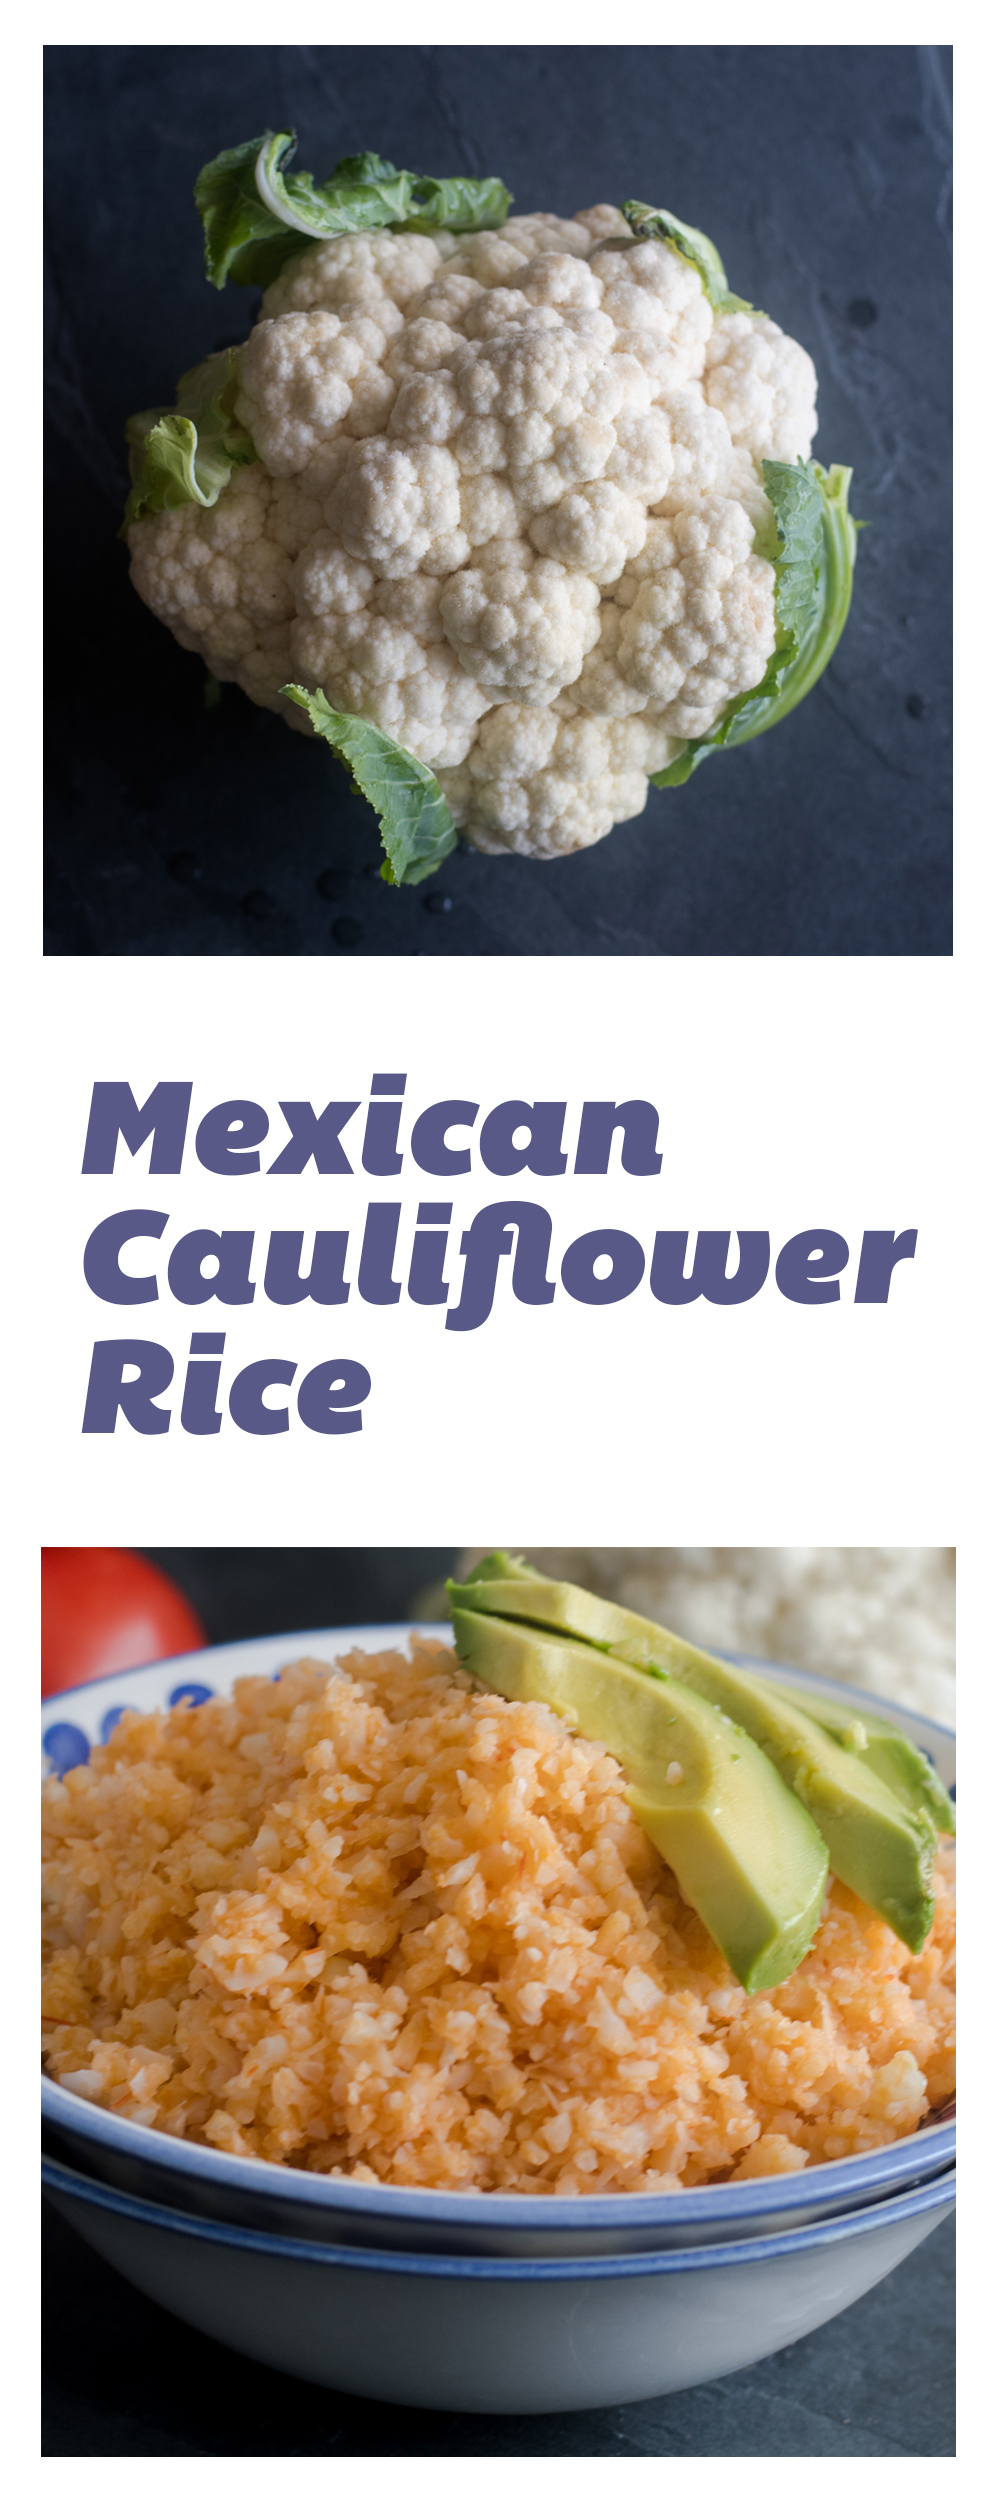 Mexican Cauliflower Rice is a healthier version of traditional Mexican rice!